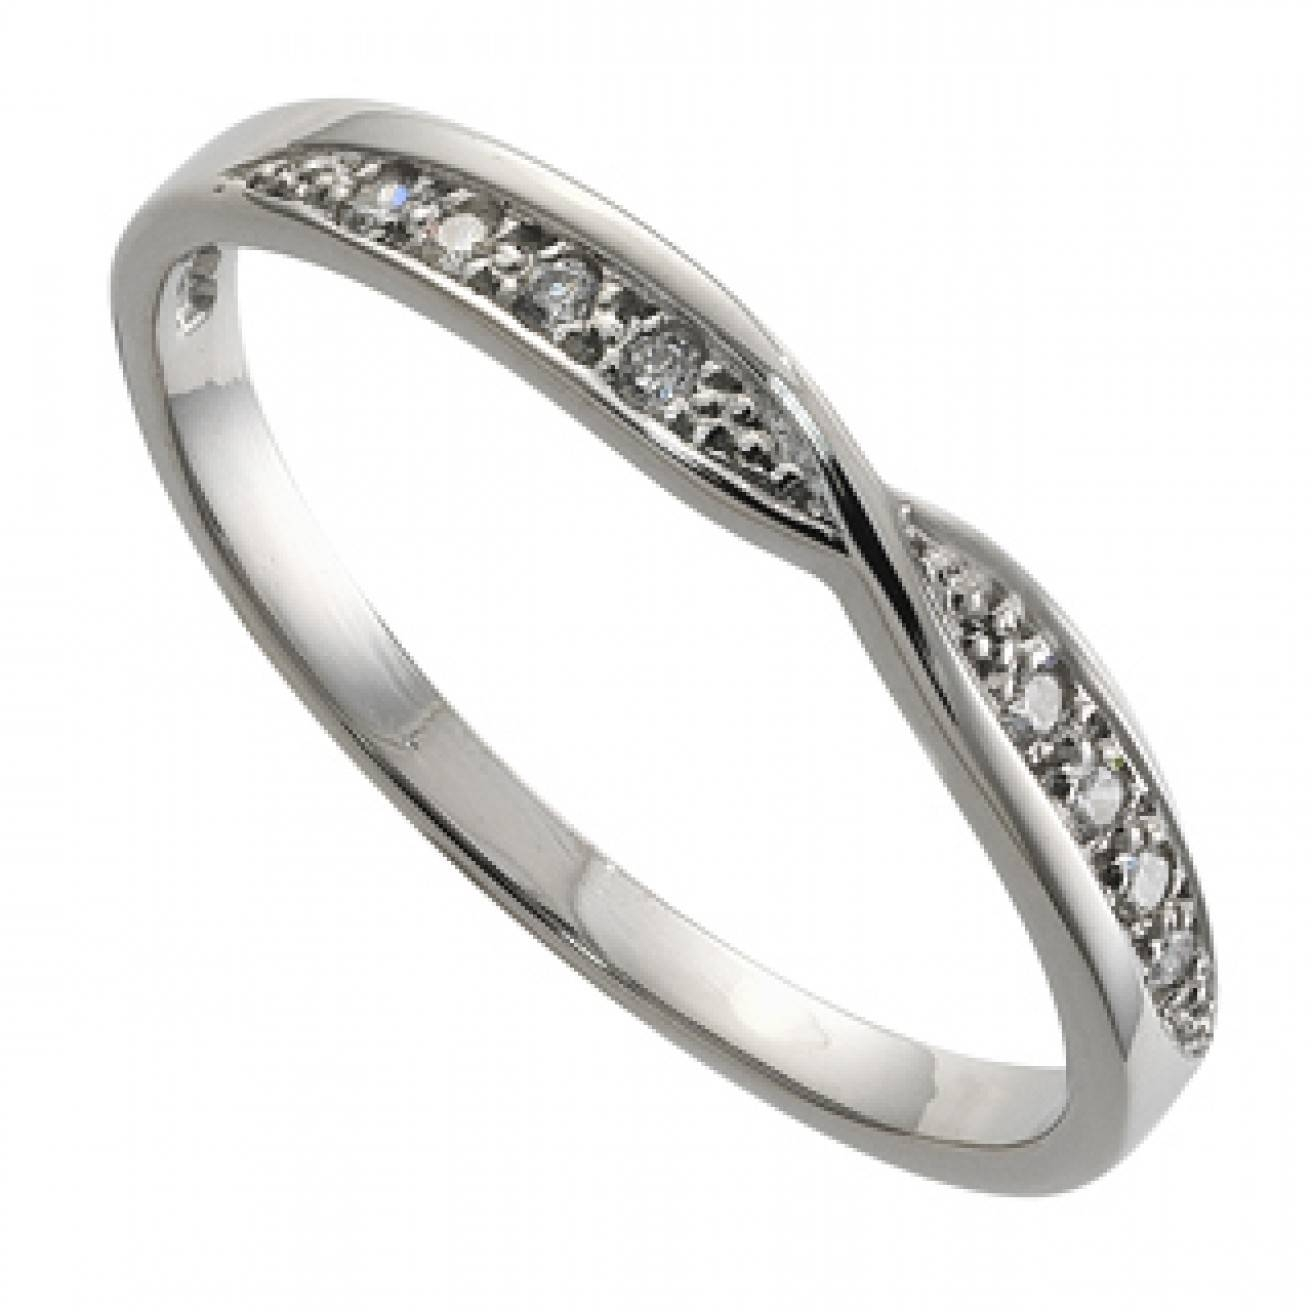 Wedding Rings : Platinum Wedding Rings For Him Mens White Gold Inside Platinum Wedding Rings For Women (View 15 of 15)